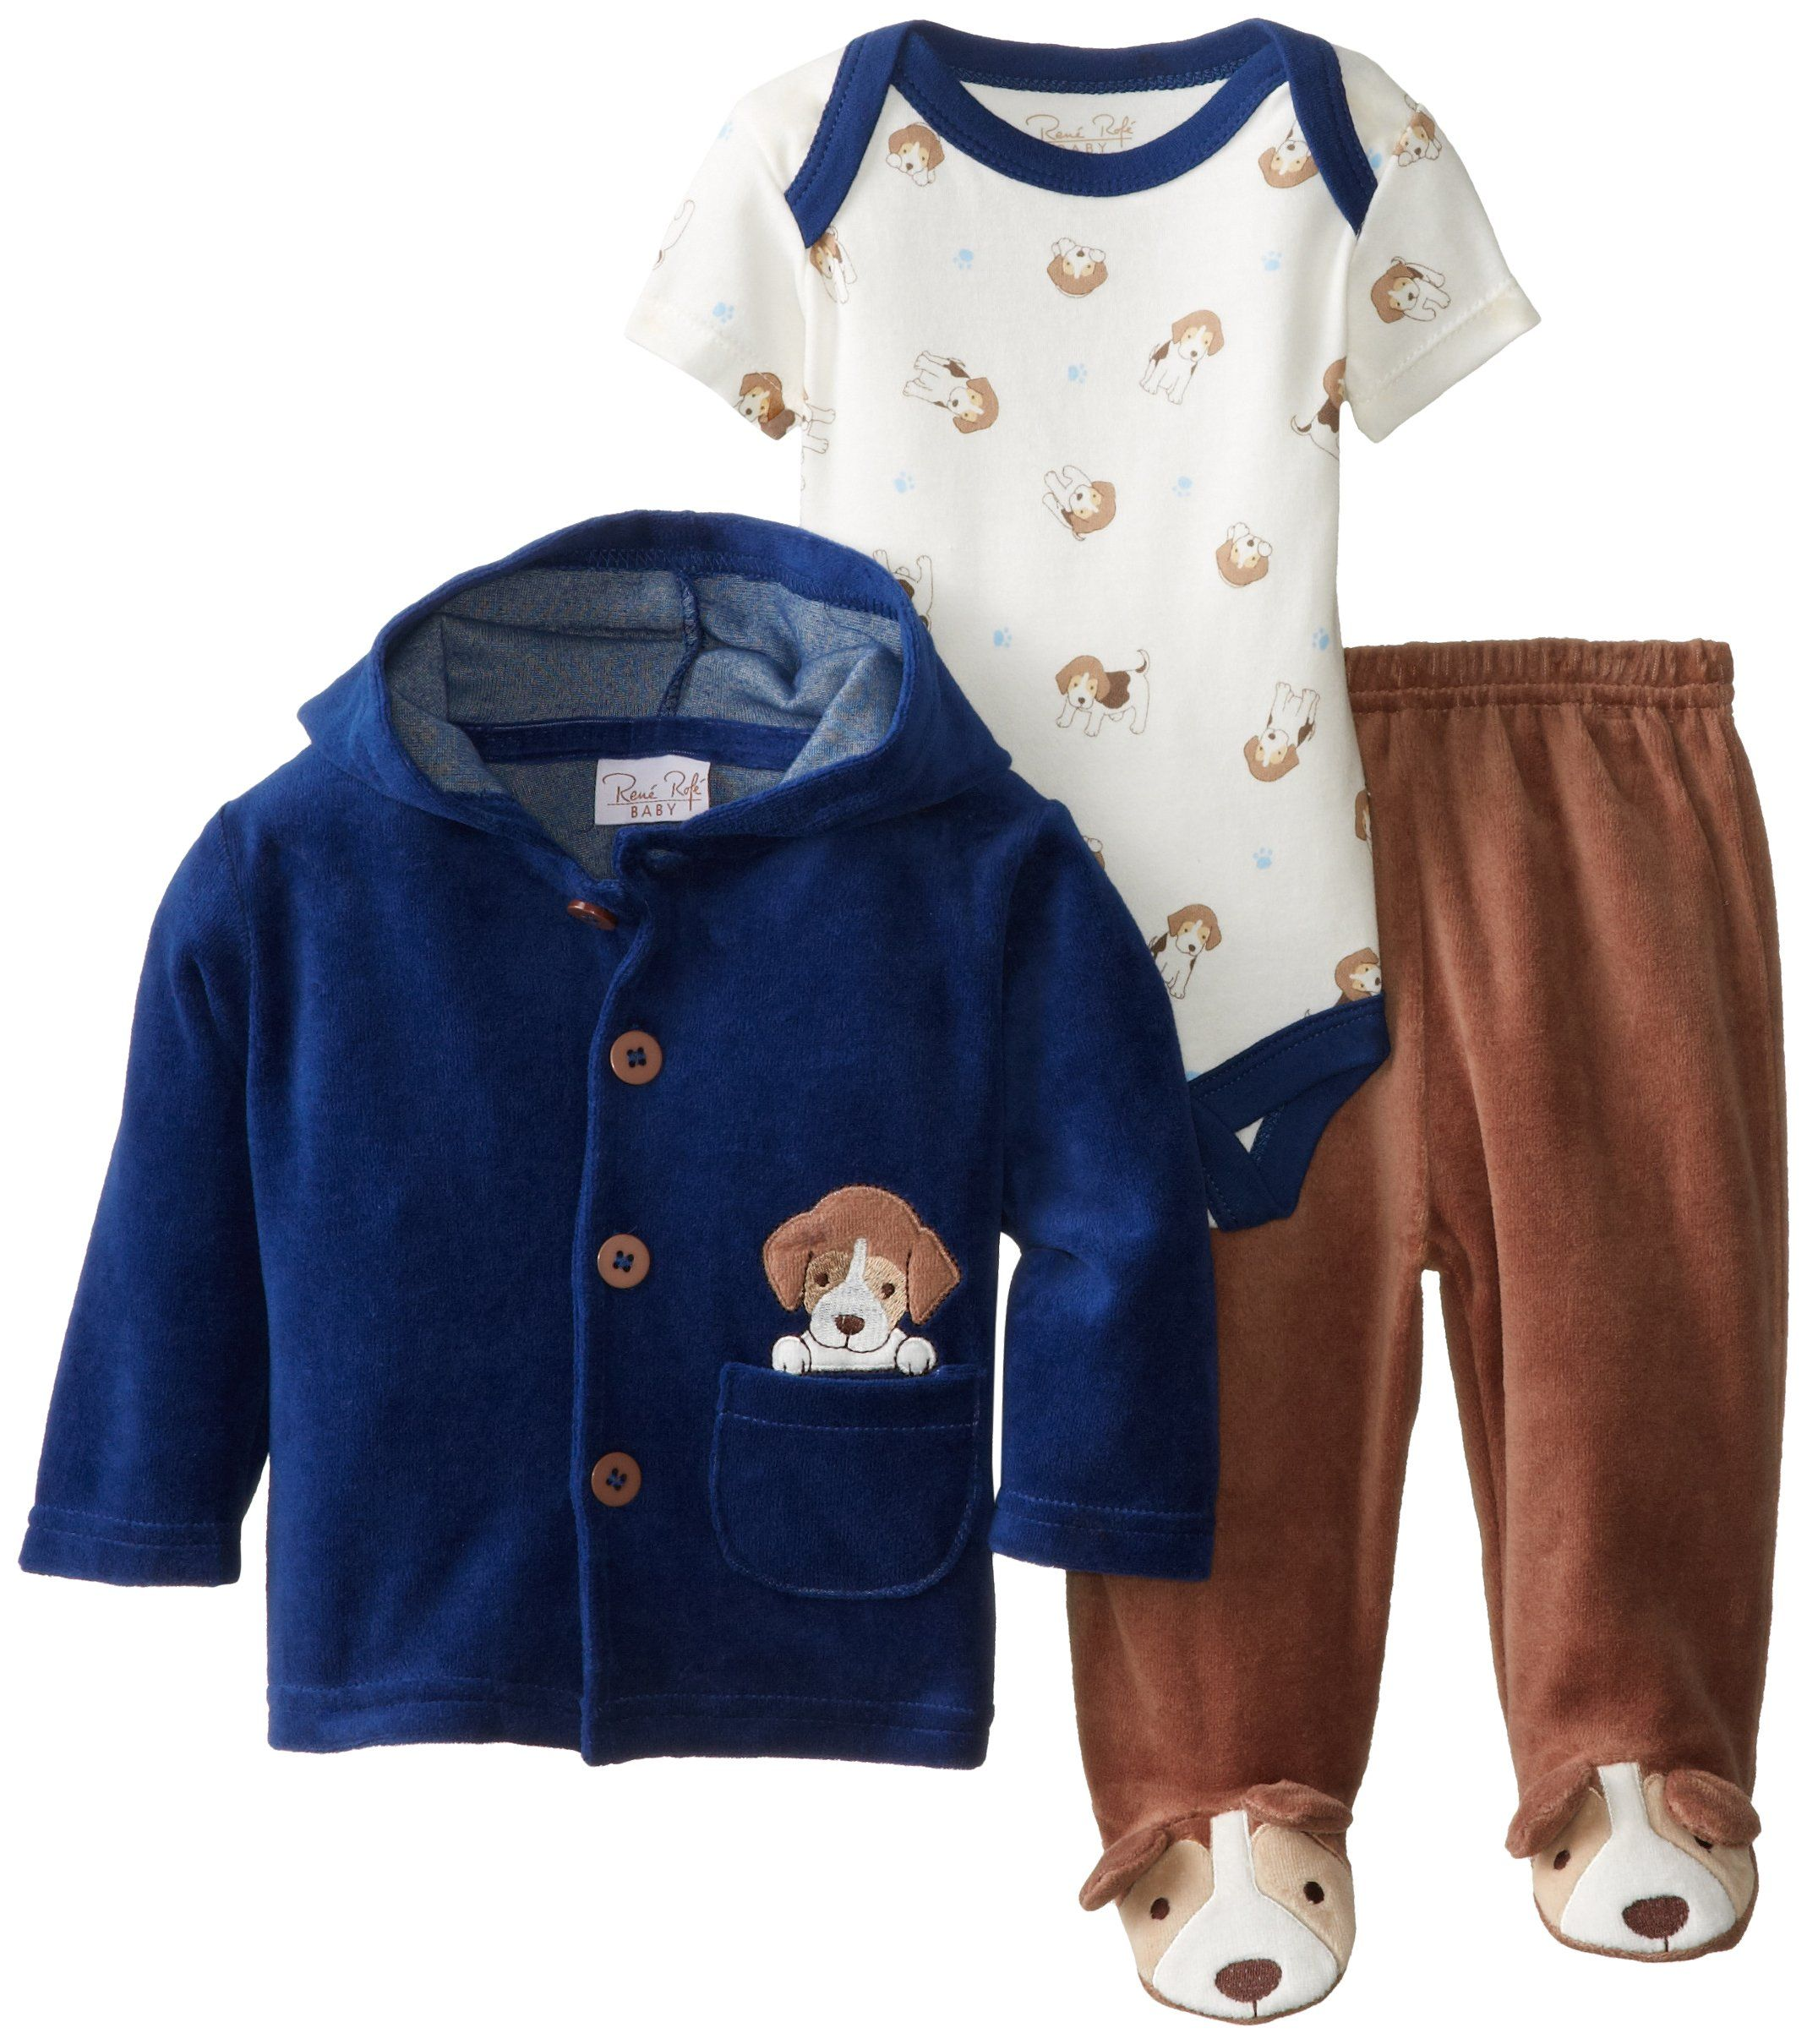 Rene Rofe Baby Newborn Boys Velour Hooded Puppy Jacket and Pant Set